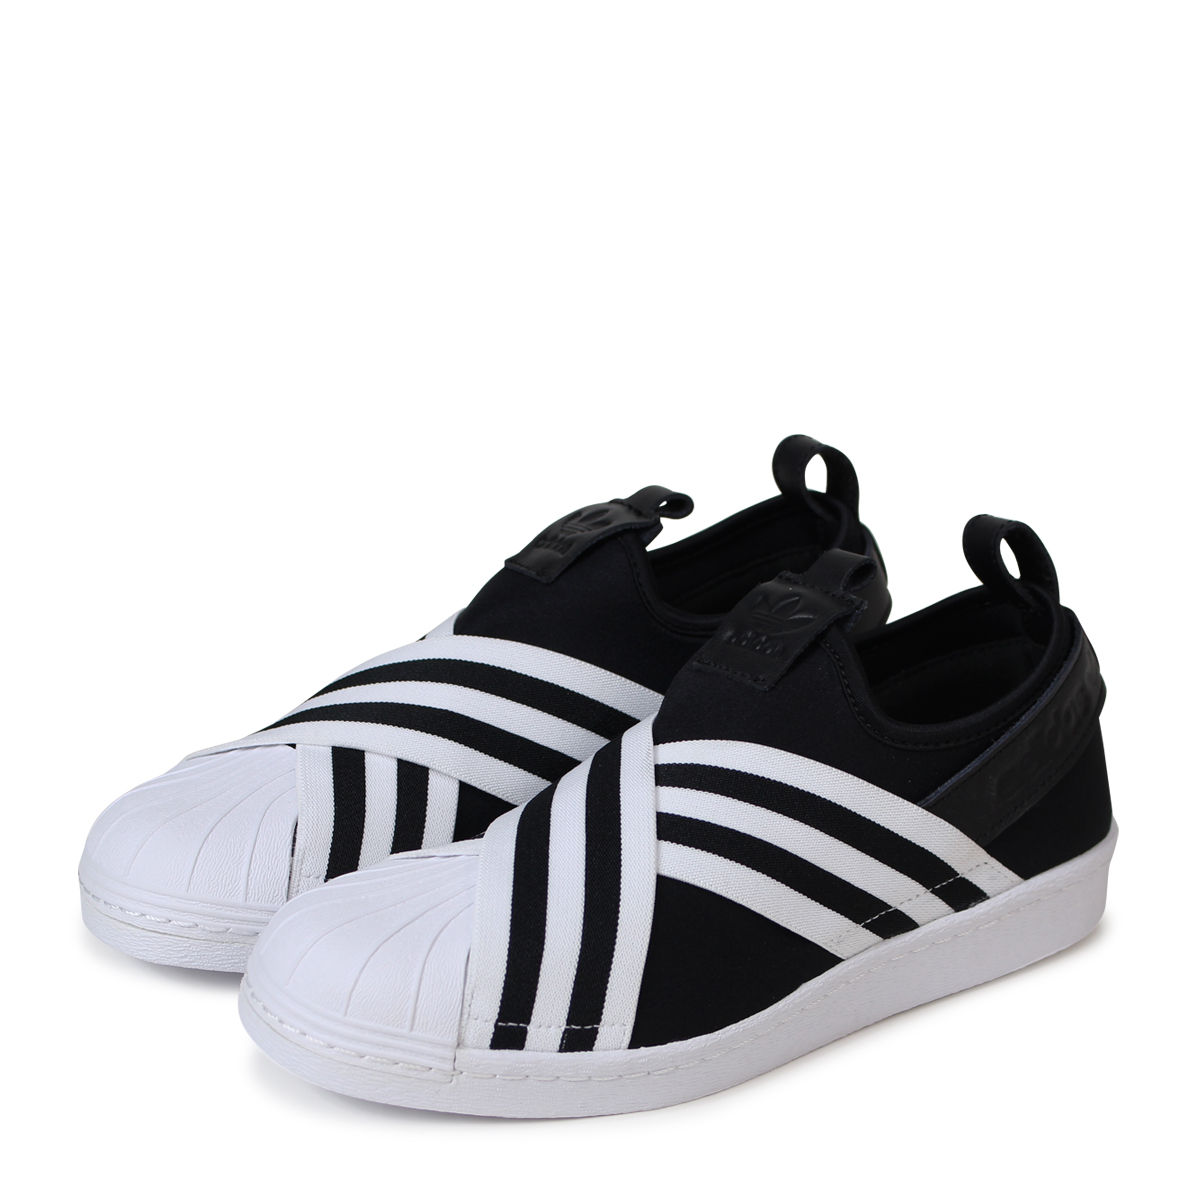 adidas Originals SUPERSTAR SLIPON W Adidas superstar Lady's slip-ons sneakers AC8582 black originals [load planned Shinnyu load in reservation product 4/19 ...